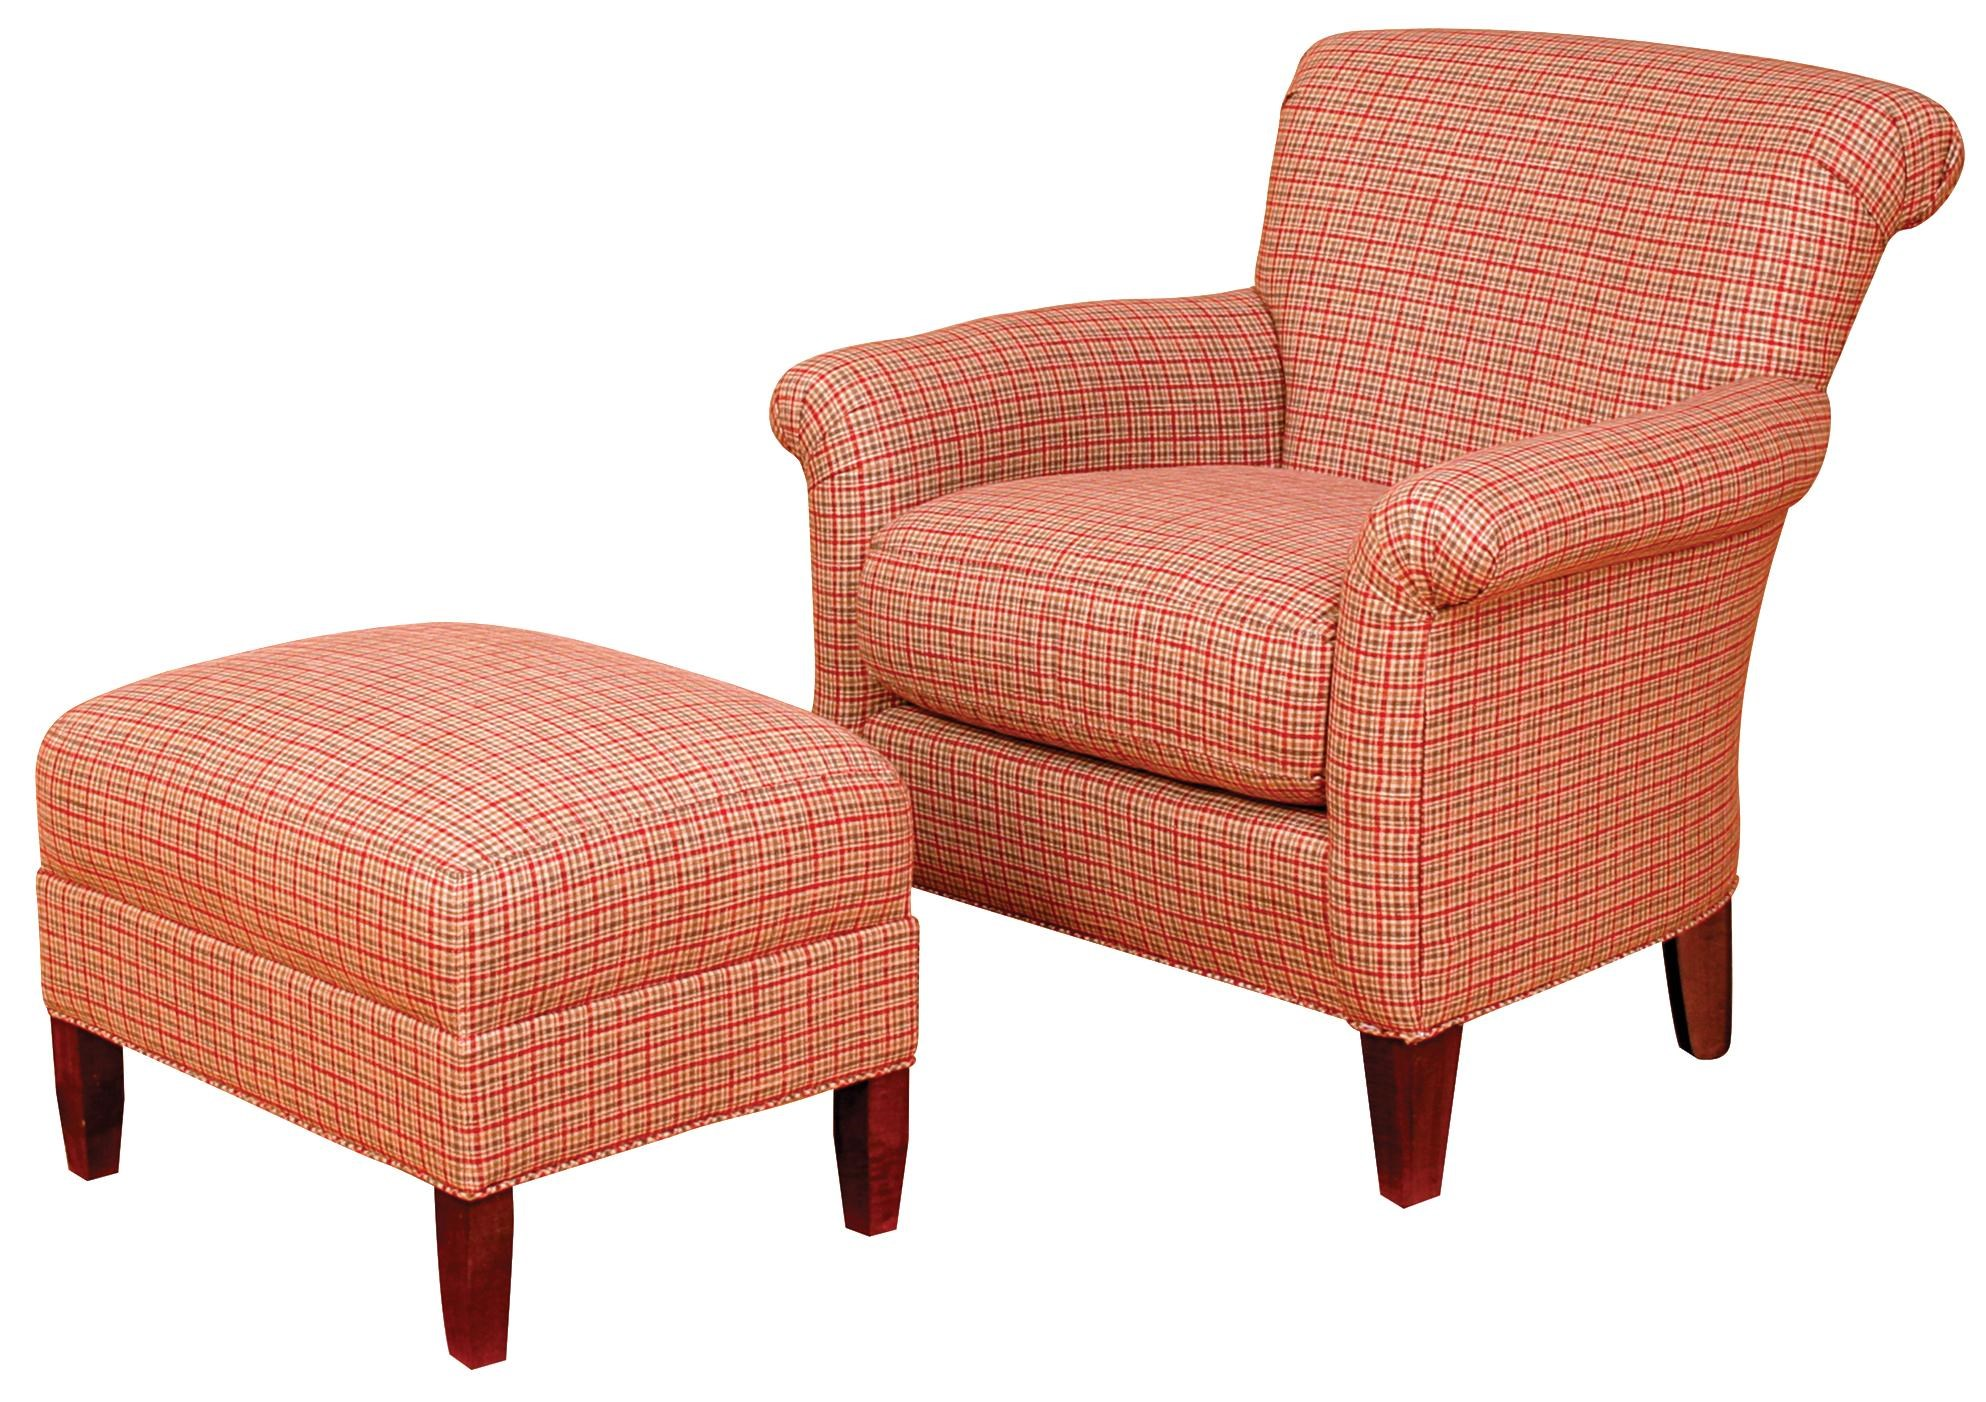 Beau Biltmore King Hickory Accent Chairs And OttomansFrancis Rolled Back Chair  And Ottoman Set